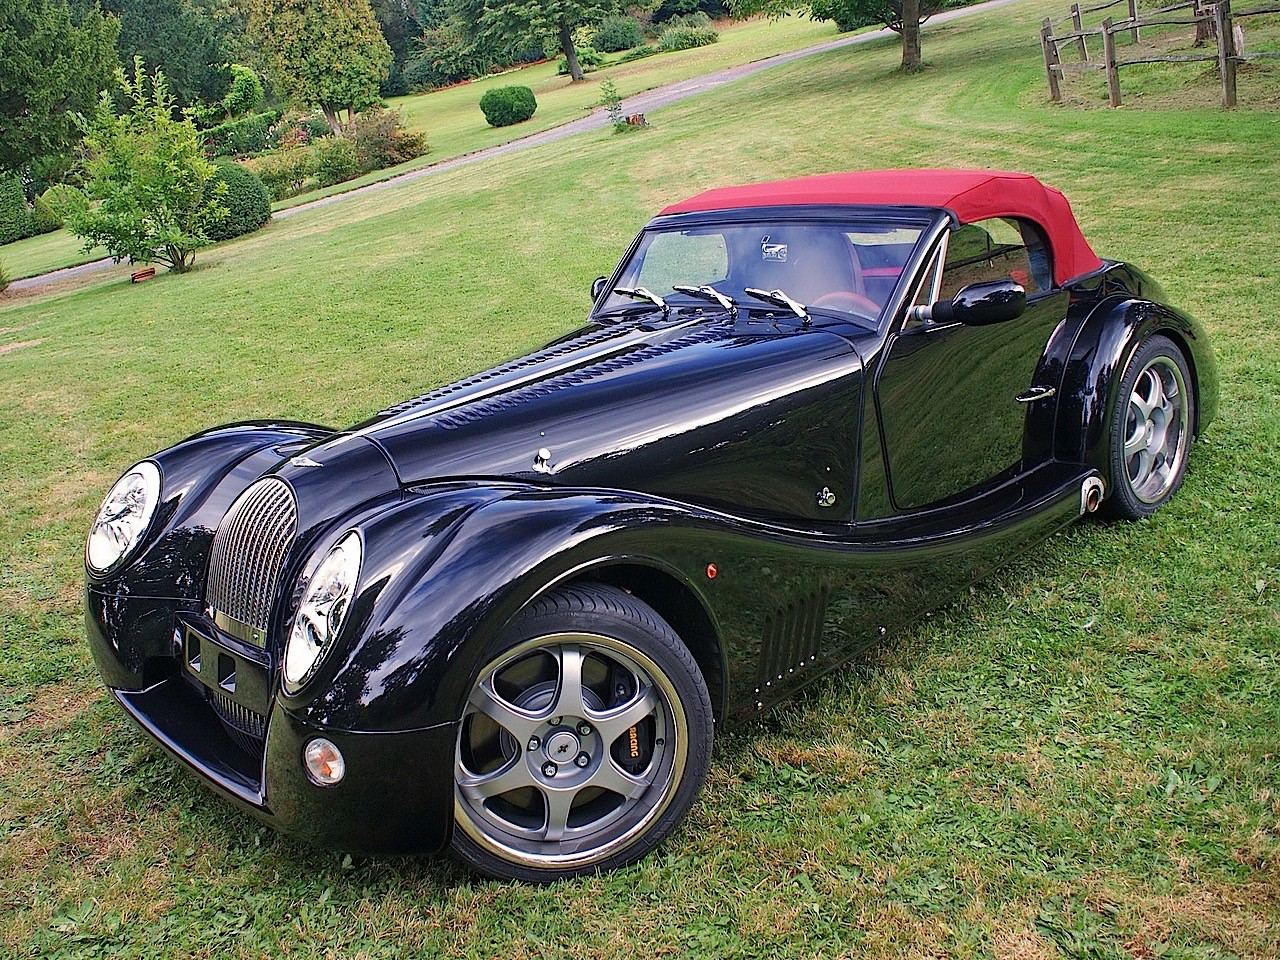 Morgan aero 8 specs 2008 2009 autoevolution morgan aero 8 2008 2009 vanachro Images